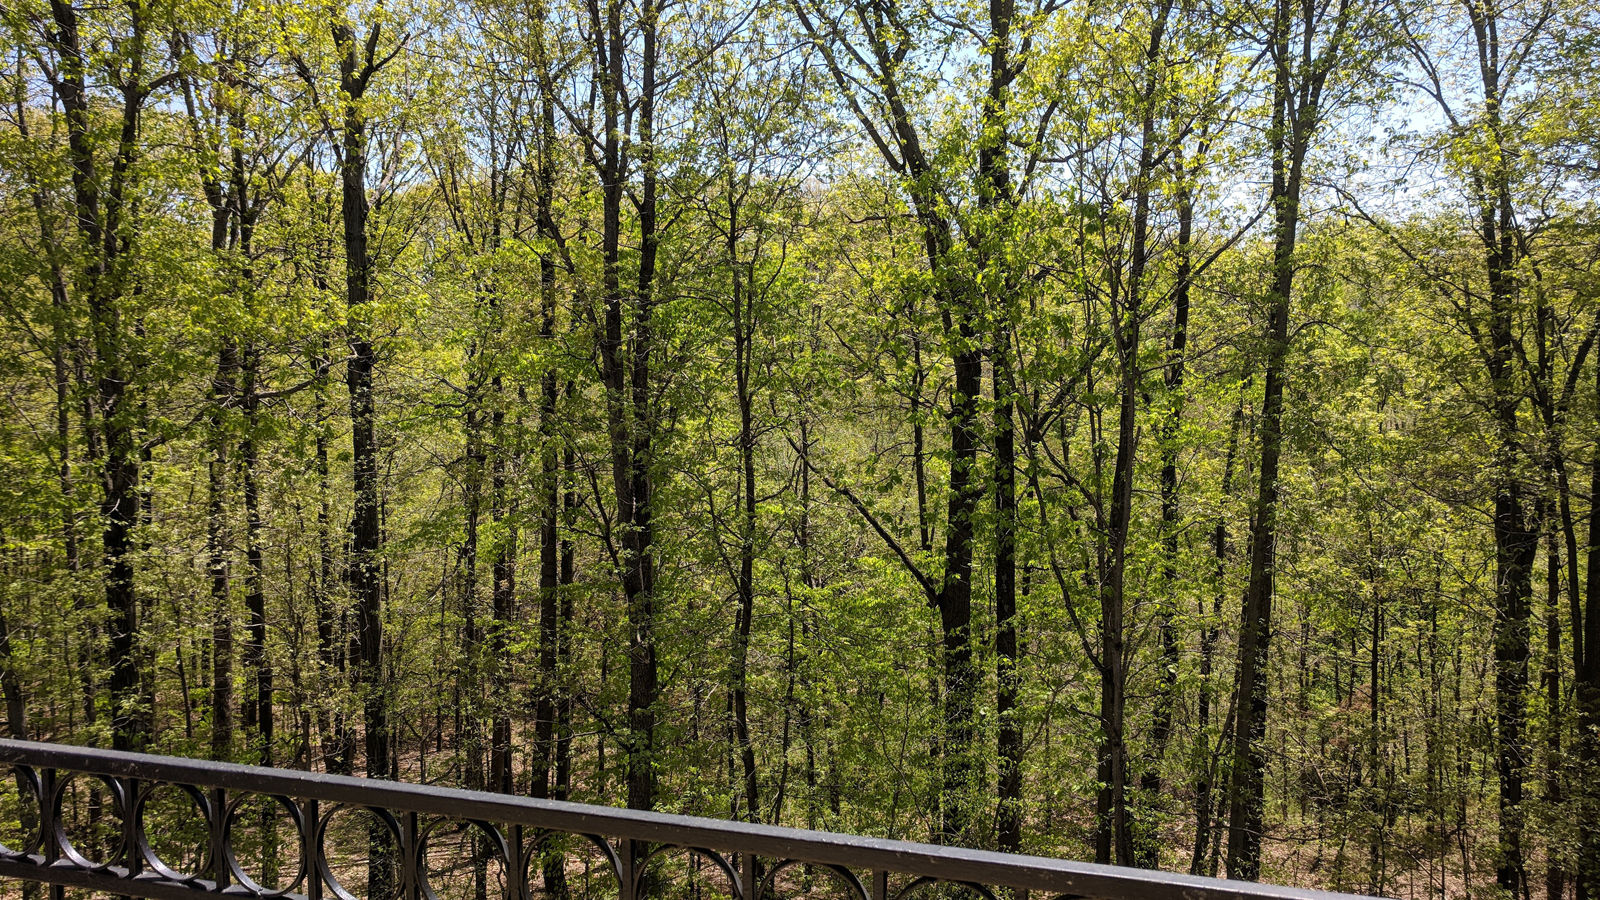 A view of a wooded area from an apartment complex near Franconia-Springfield station. (WTOP/Brandon Millman)